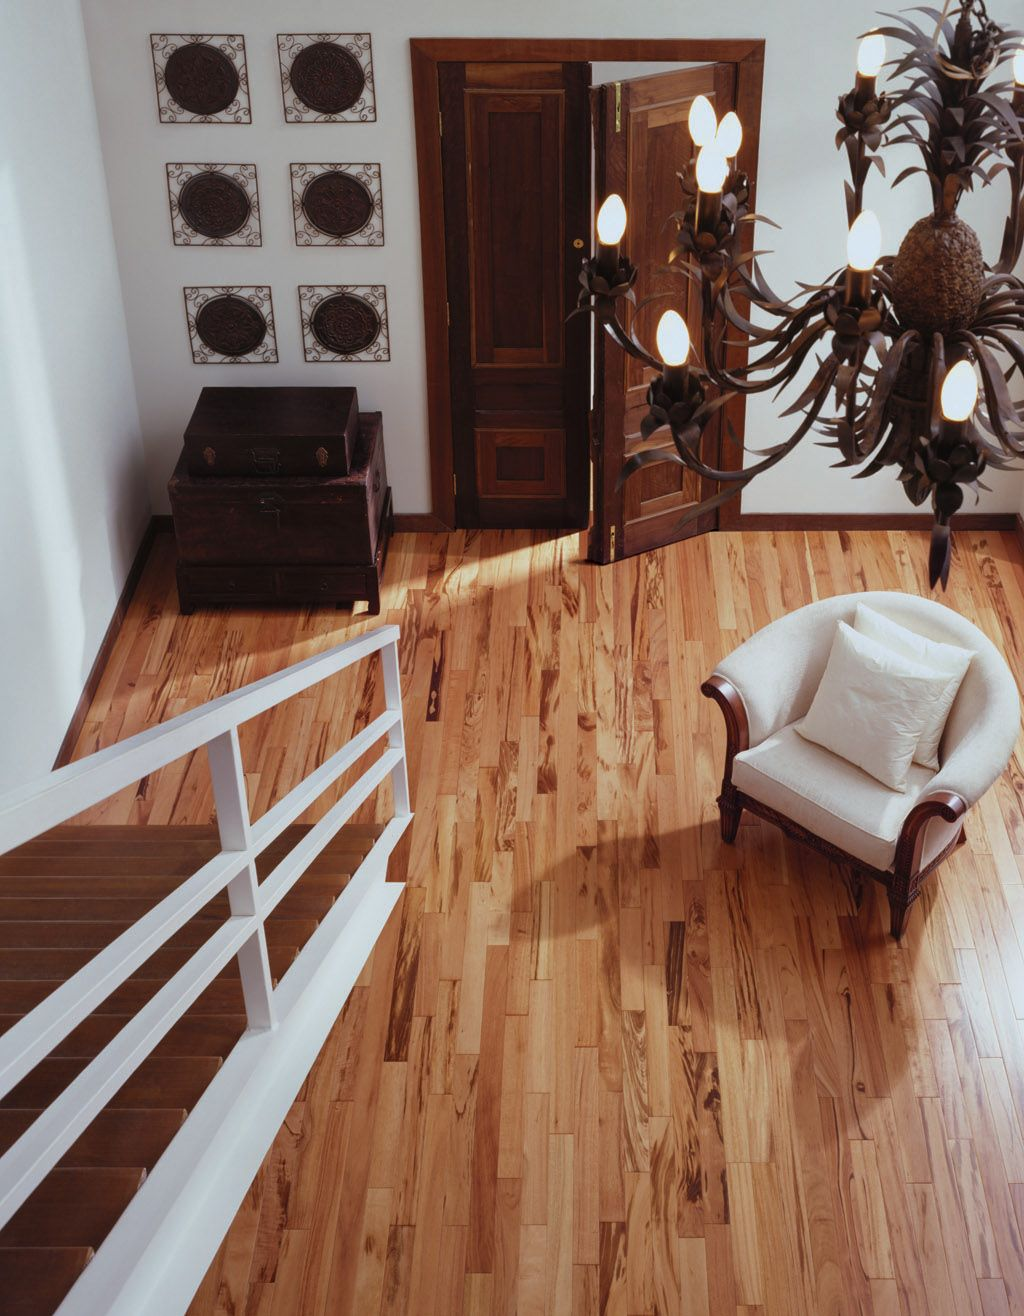 Tigerwood is an extremely durably and high quality exotic wood that would look amazing in any new room contact stonewood flooring for any questions and